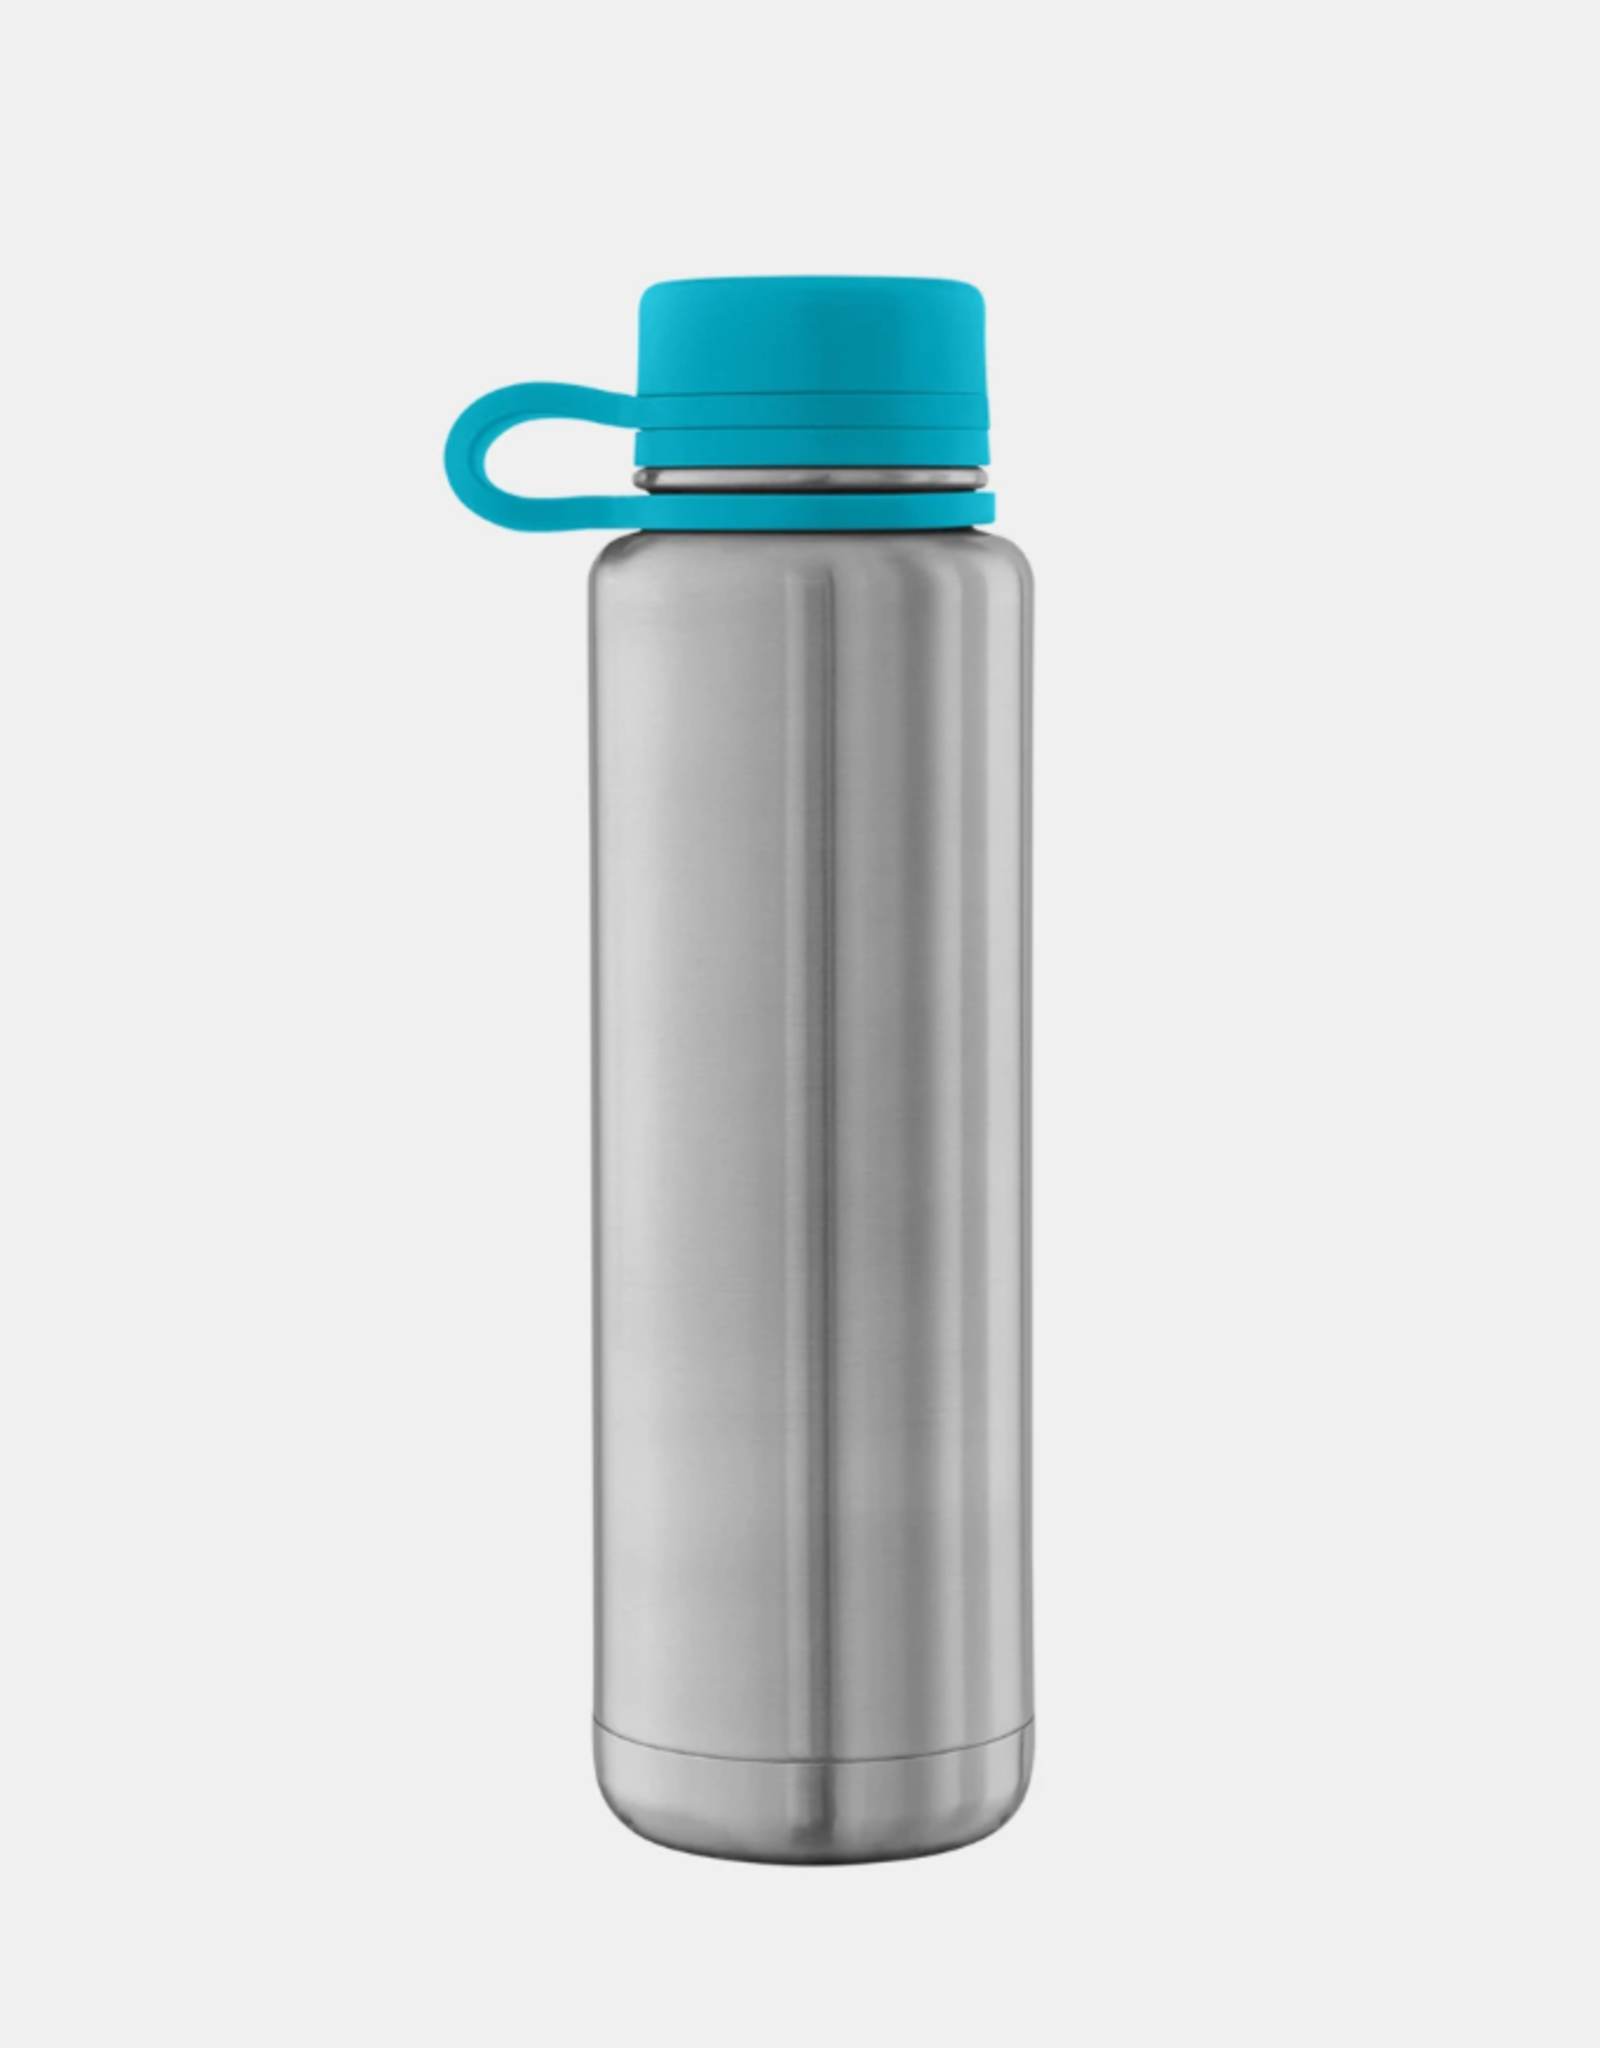 Planet Box PlanetBox - 18 oz Stainless Steel Water Bottle